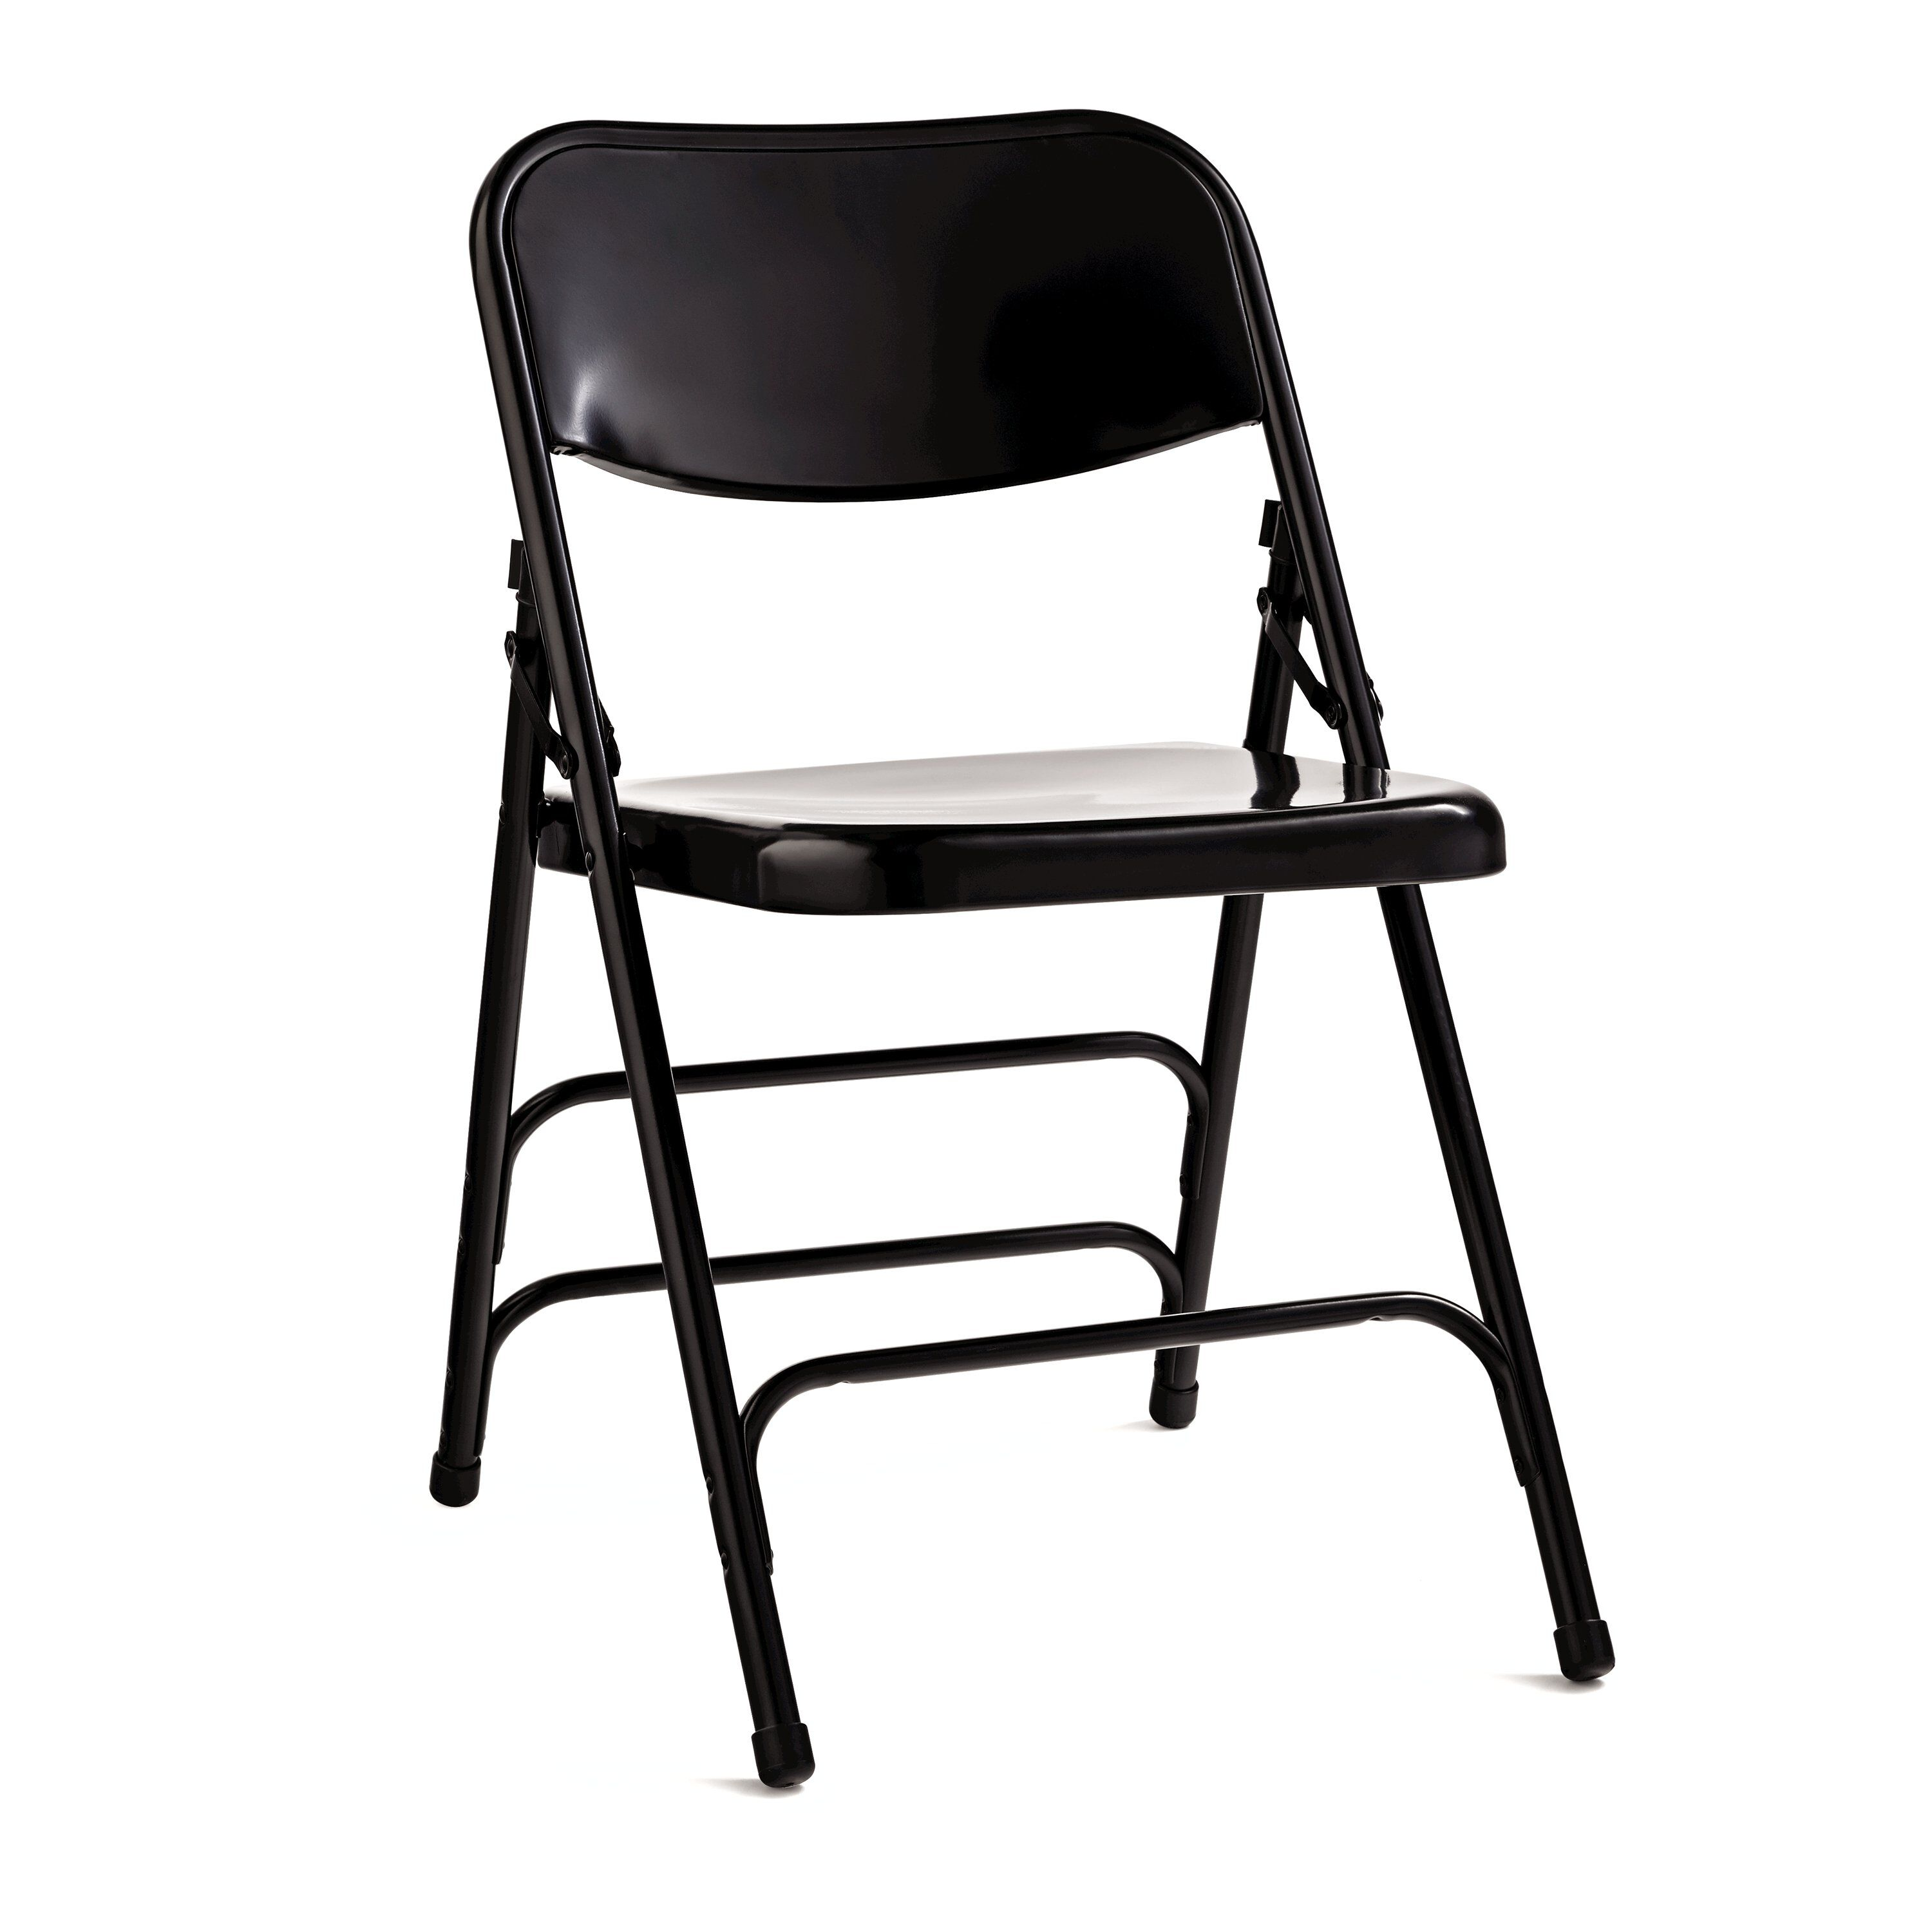 Superb Samsonite Steel Folding Chair (Case/4) In The Color Black.